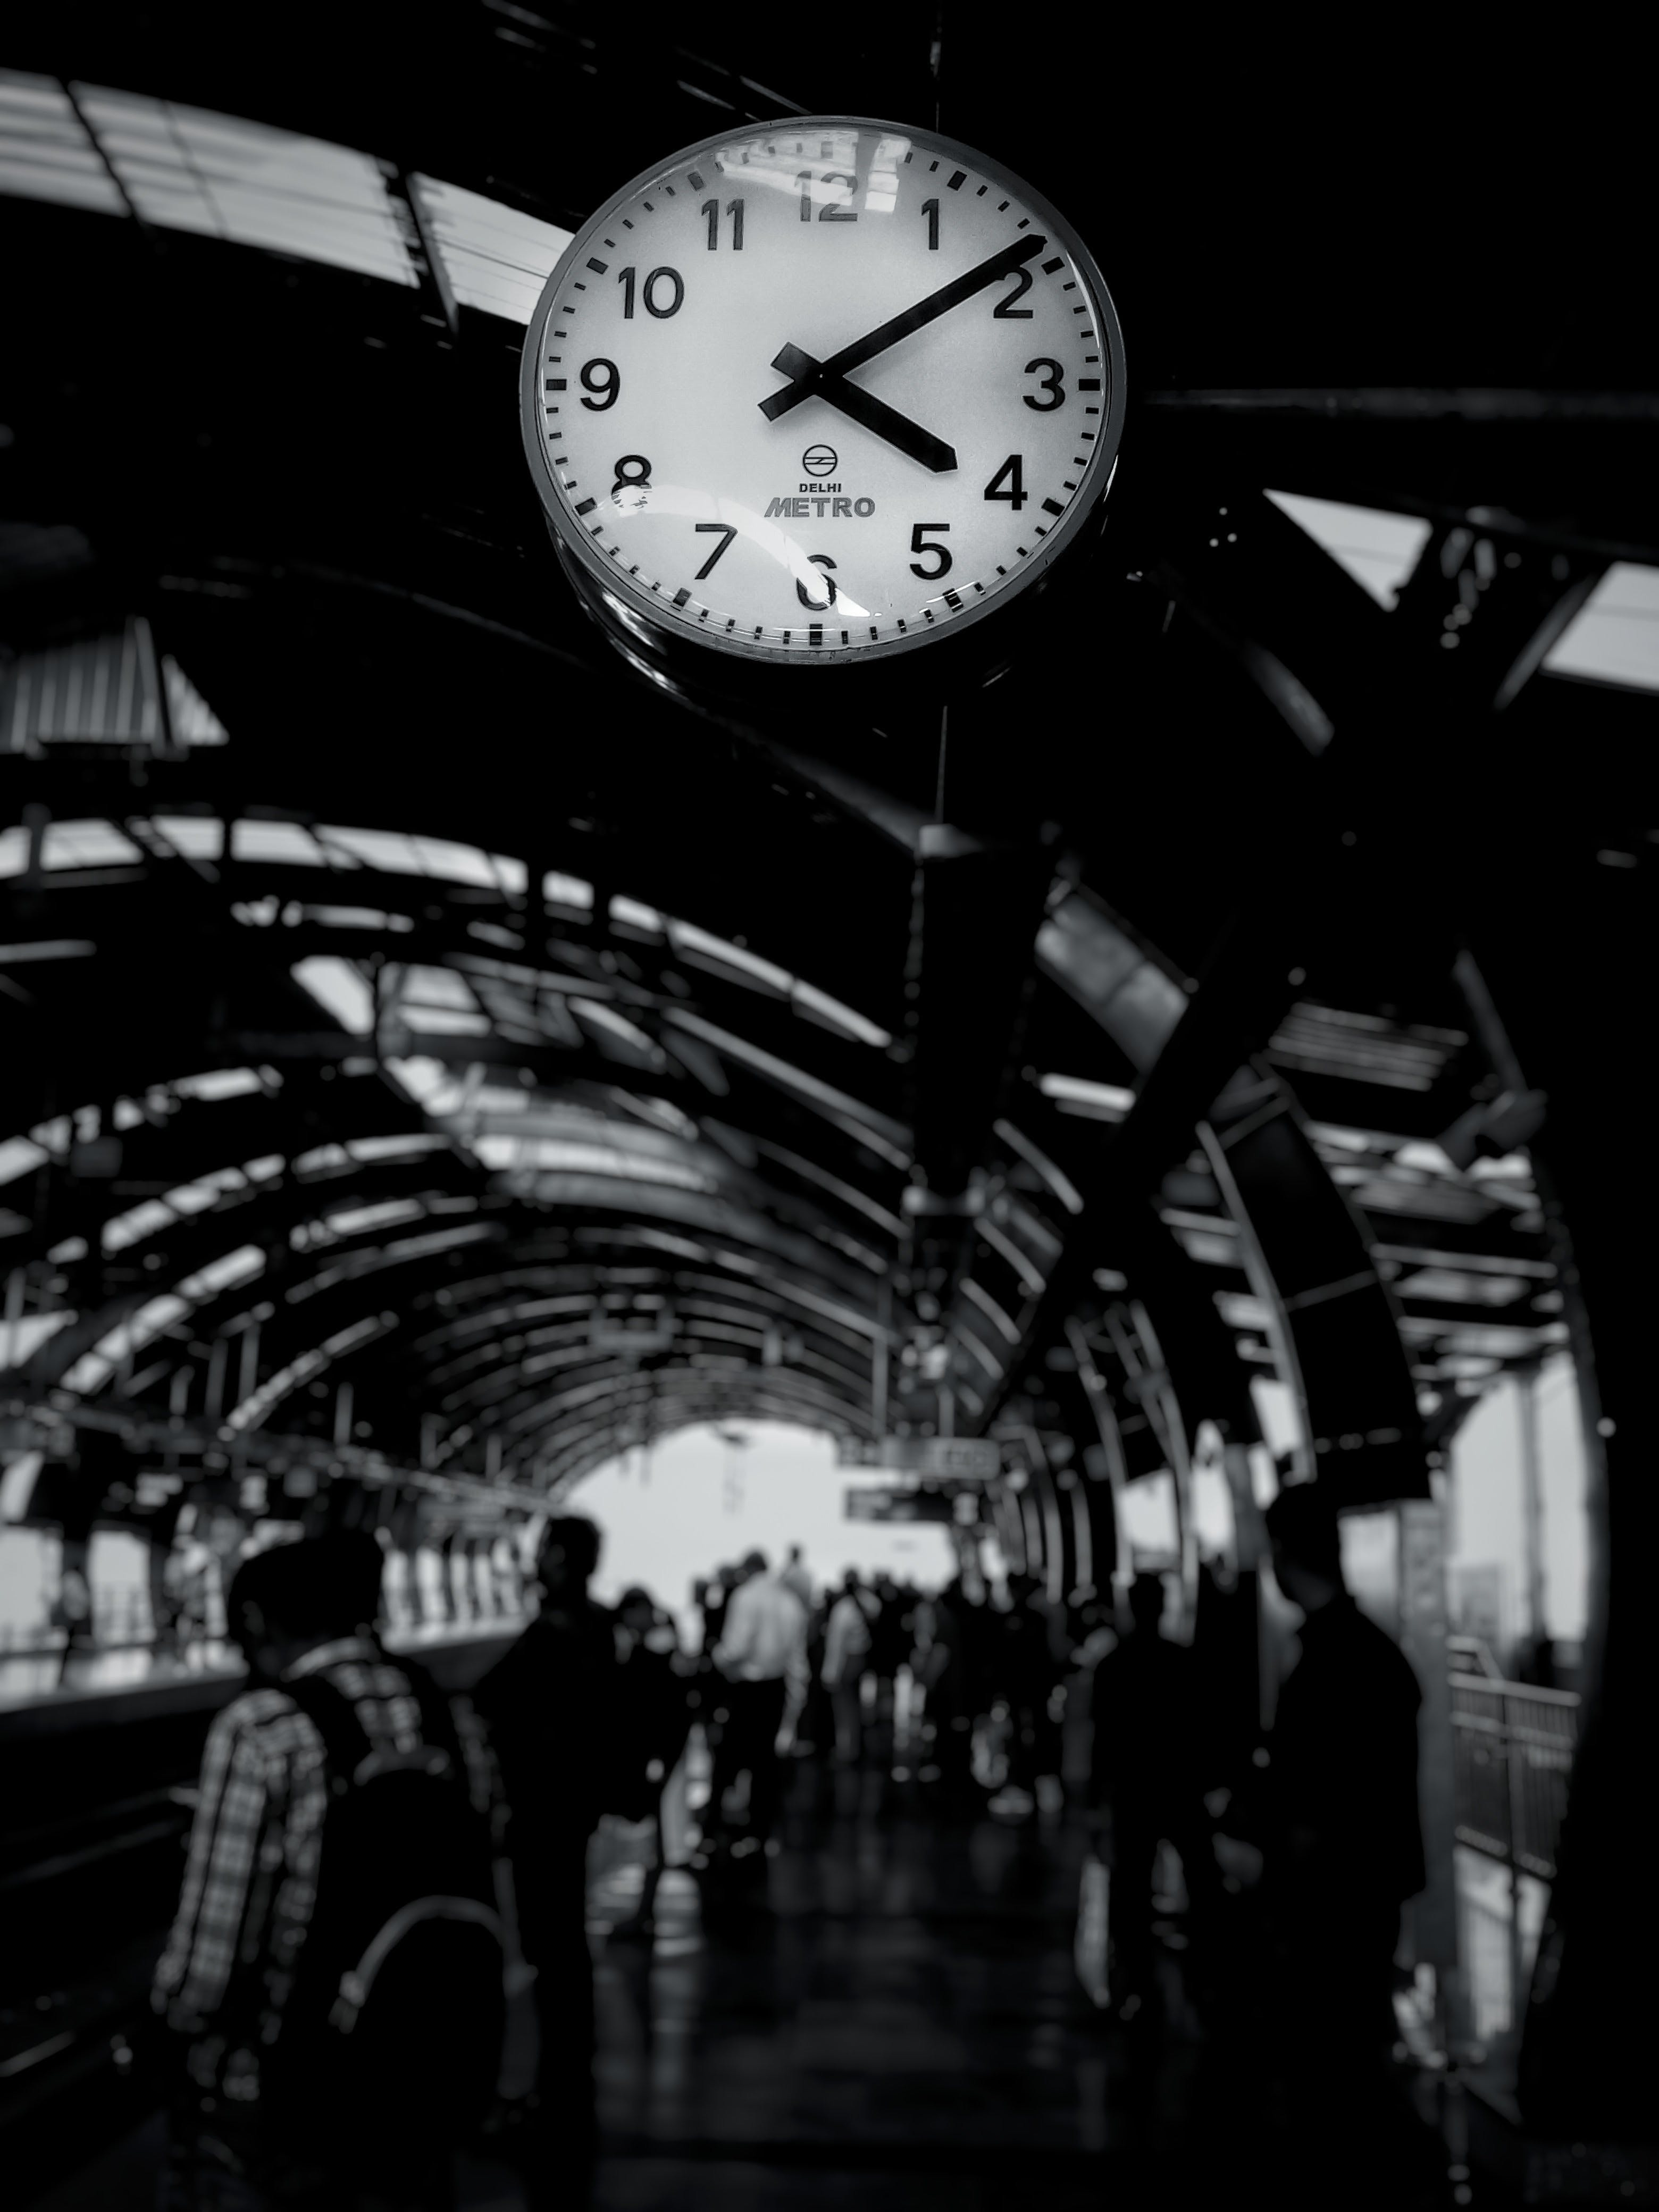 Grayscale Photography of Train Clock Reads at 4:09